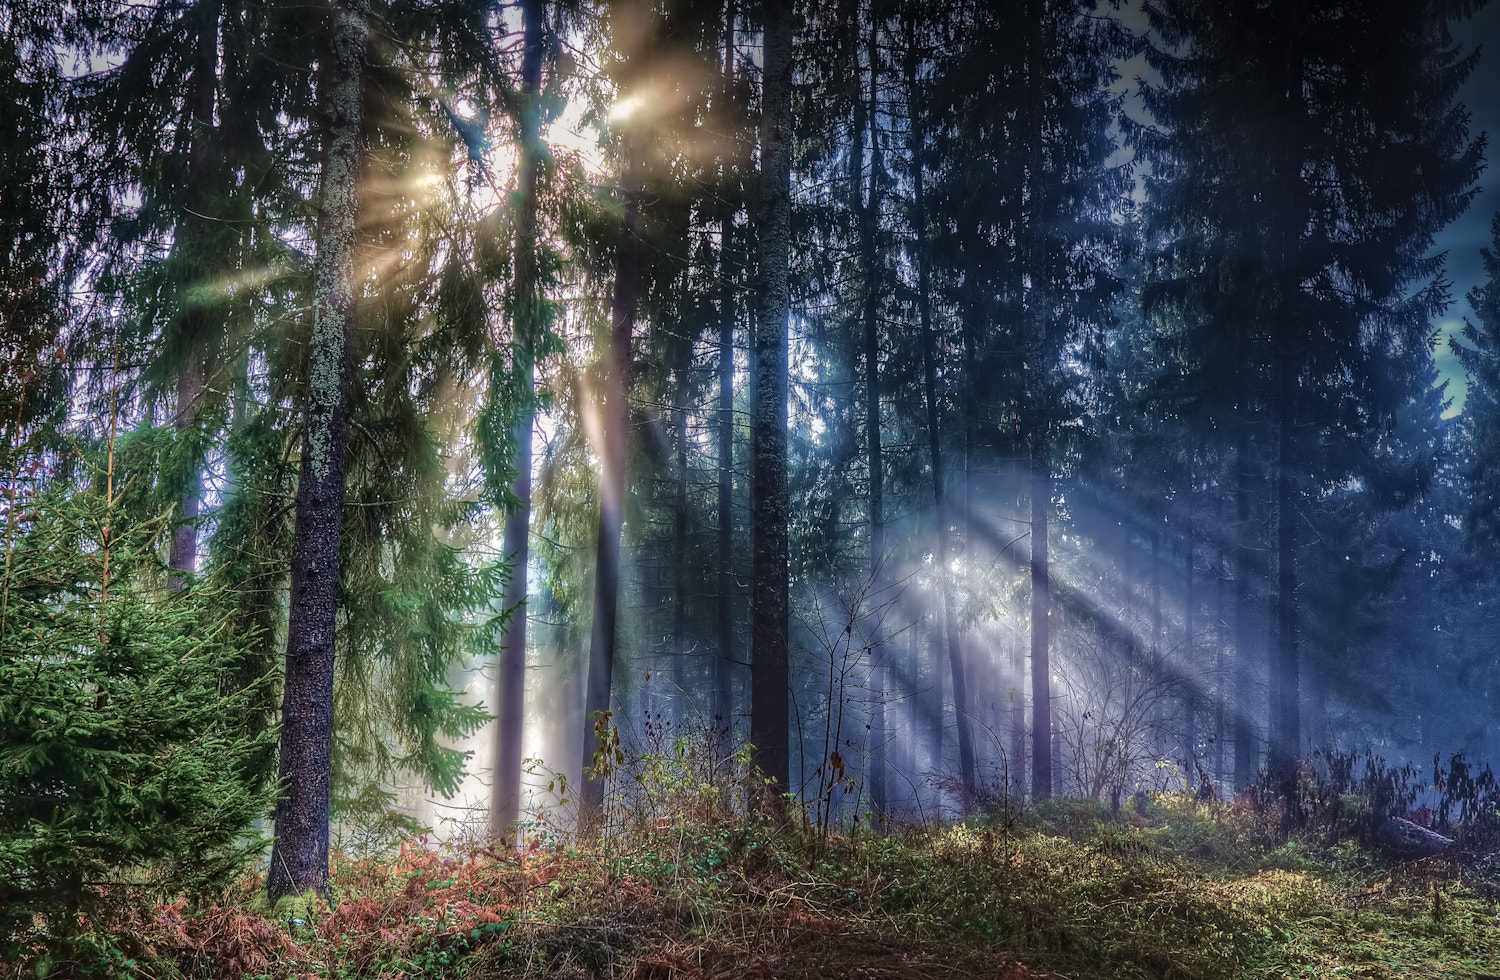 Photograph forest by Paul Werner Suess on 500px